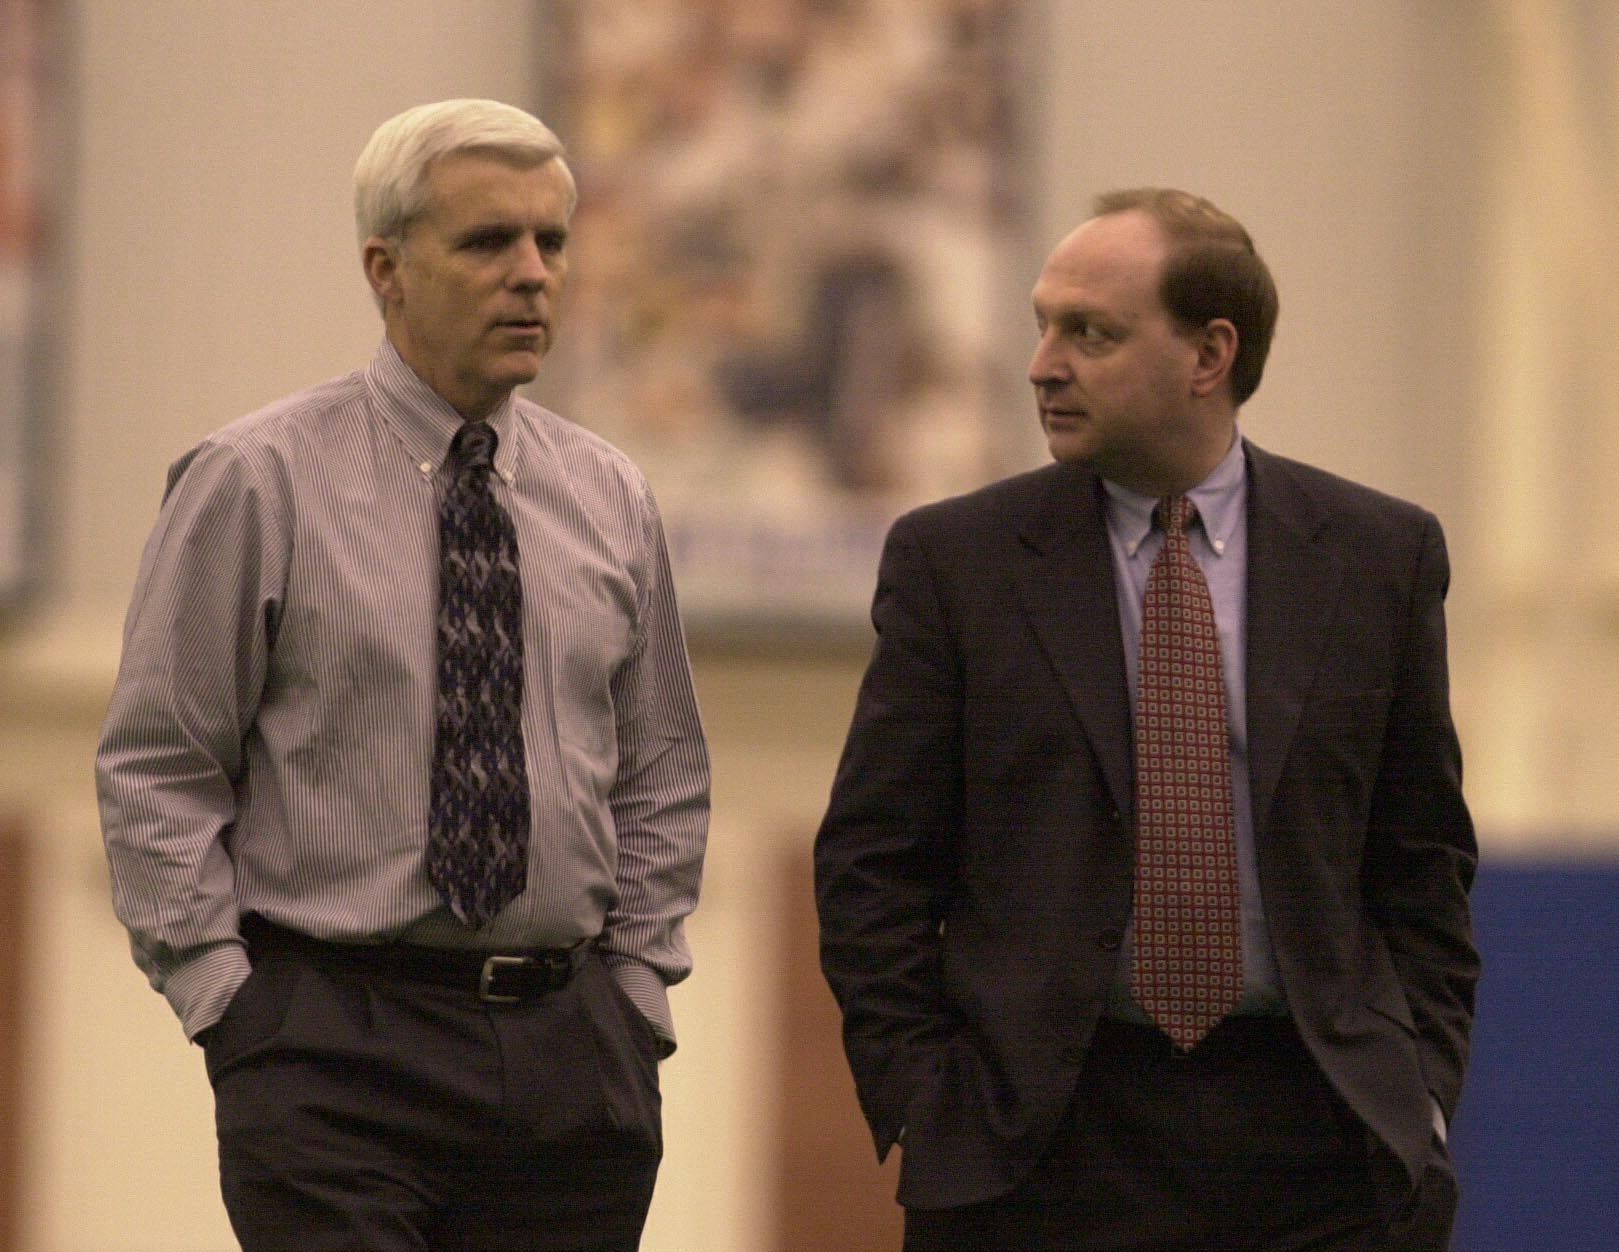 Jim Overdorf, shown here on the right in a 2001 photo with former Bills General Manager Tom Donahoe, largely stays out of the public eye, but plays a key role. (Buffalo News file photo).